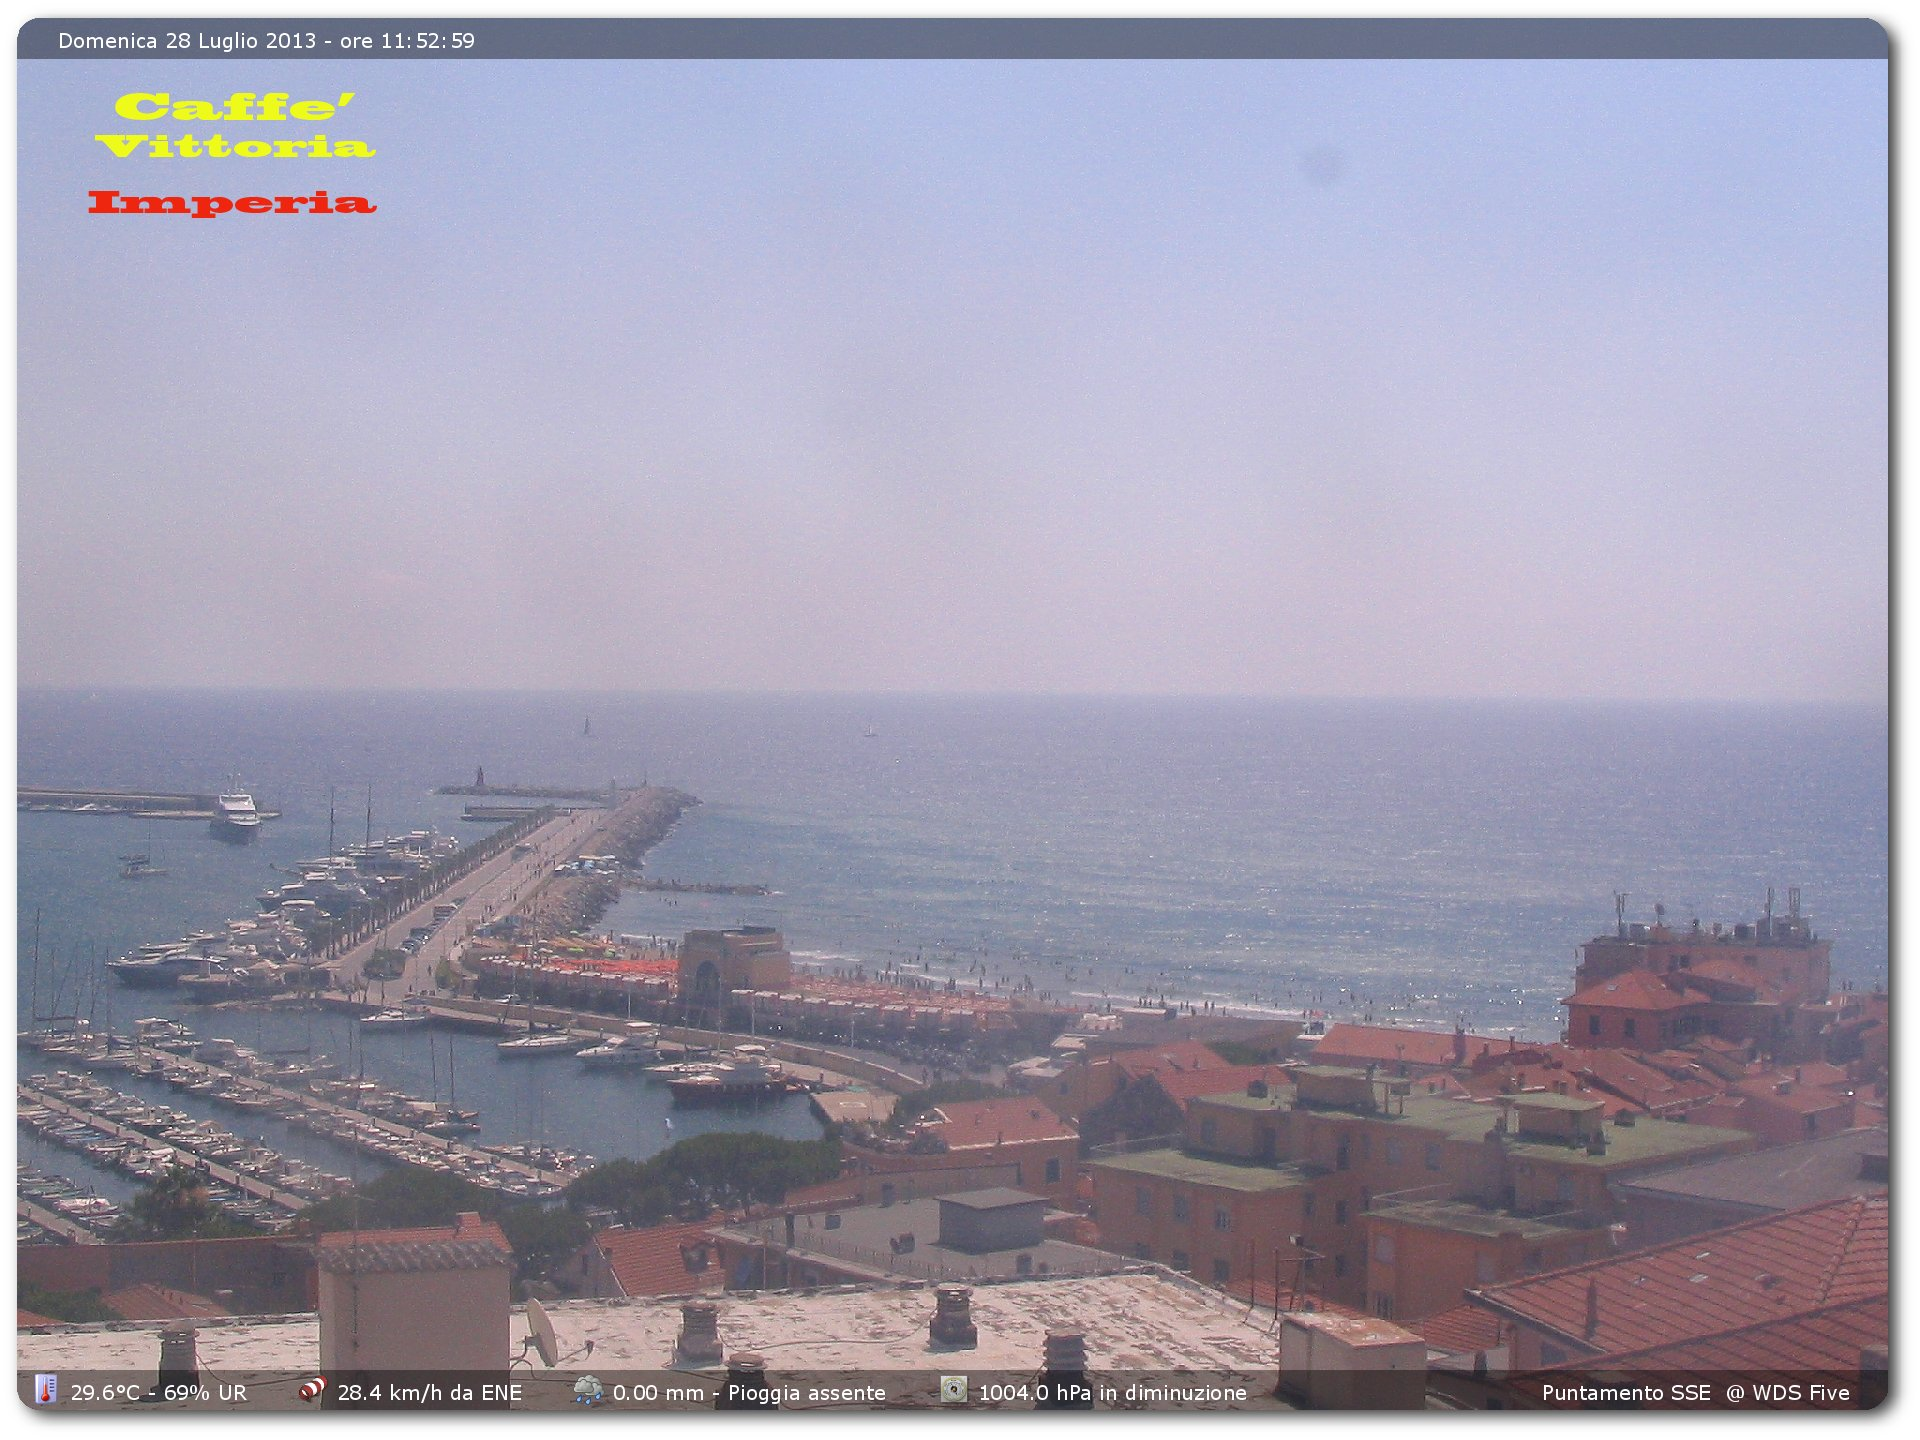 Webcam Imperia - Meteoimperia&nbsp;Live webcamera